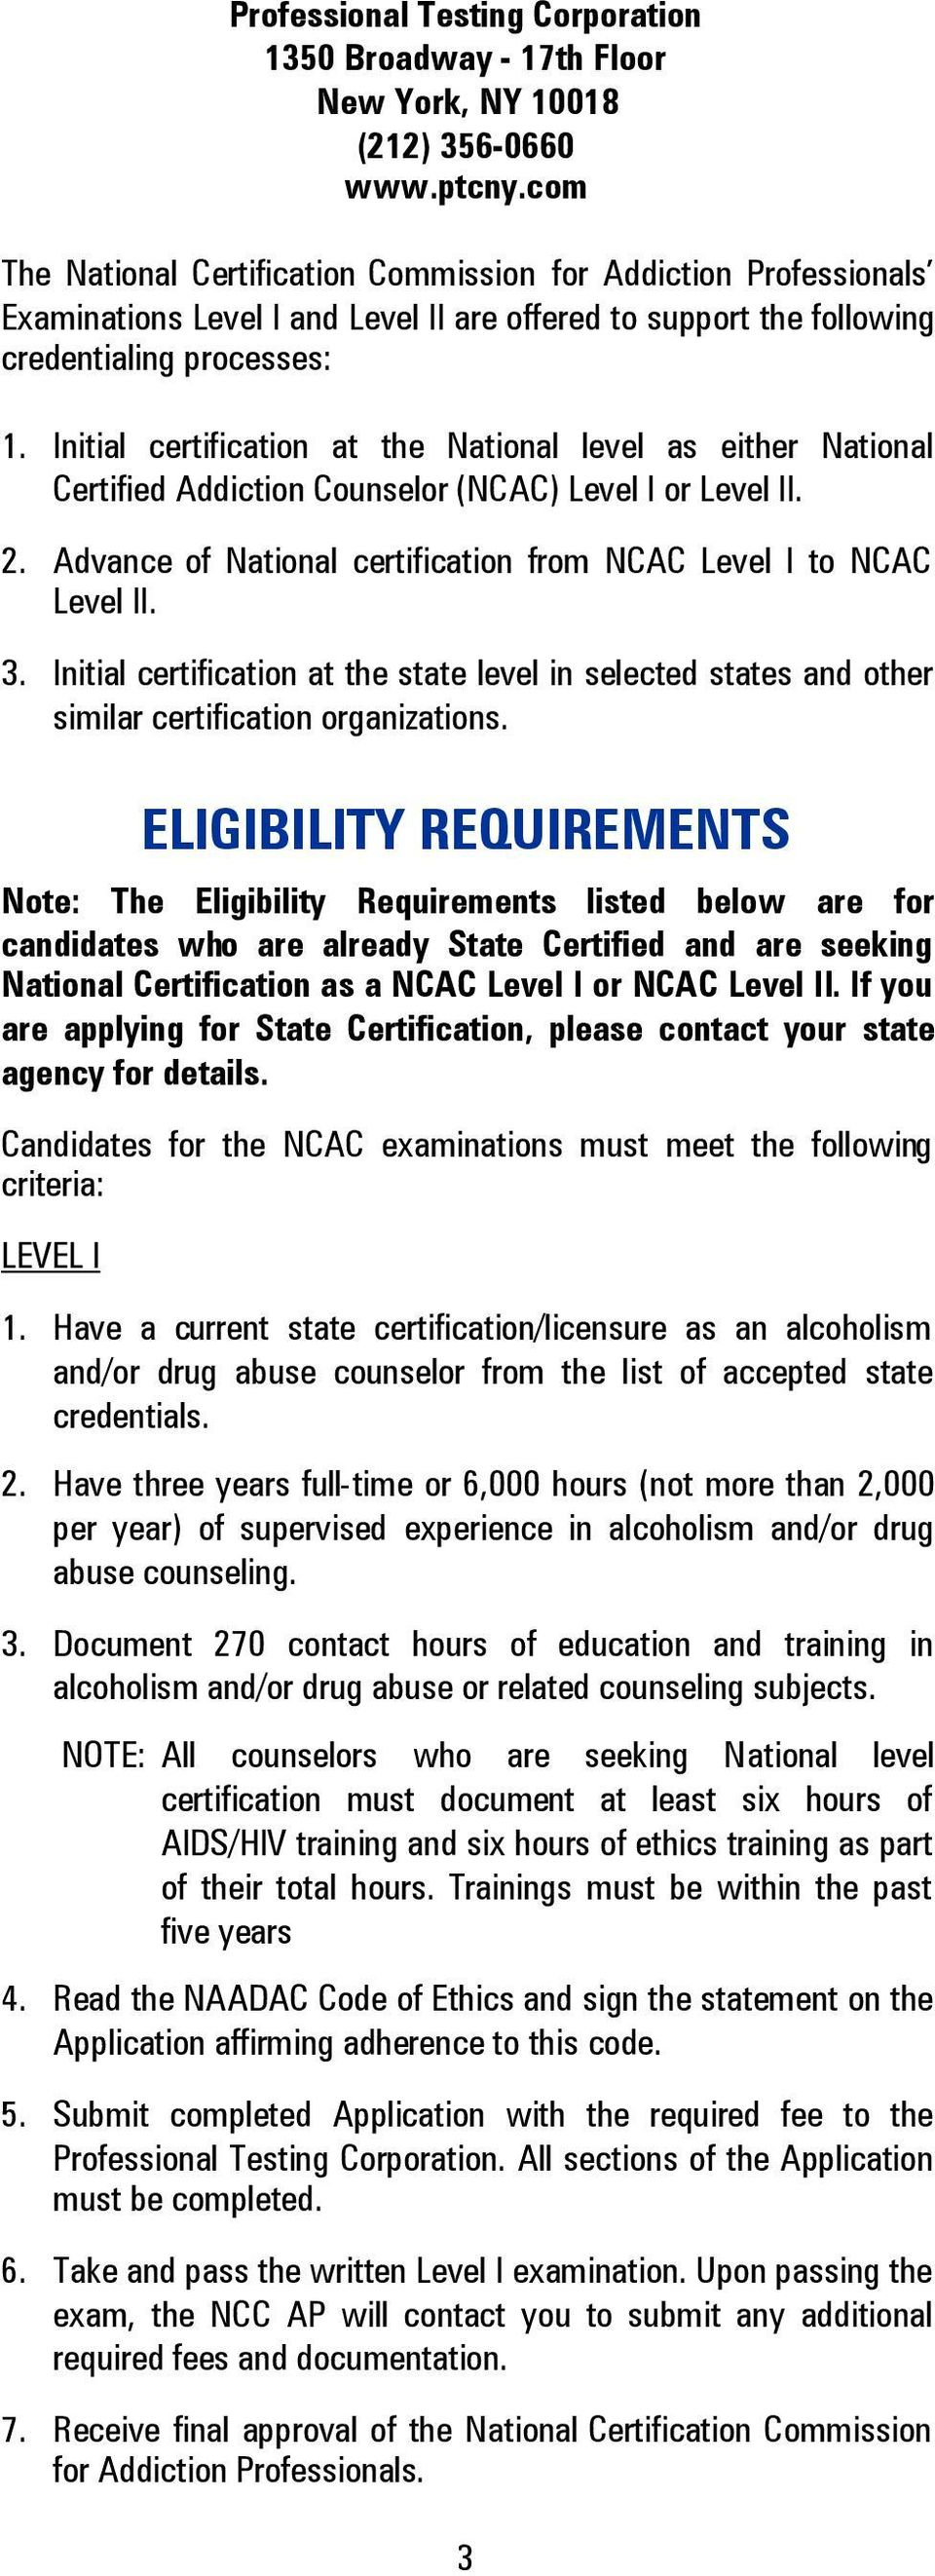 Initial certification at the National level as either National Certified Addiction Counselor (NCAC) Level I or Level II. 2. Advance of National certification from NCAC Level I to NCAC Level II. 3.